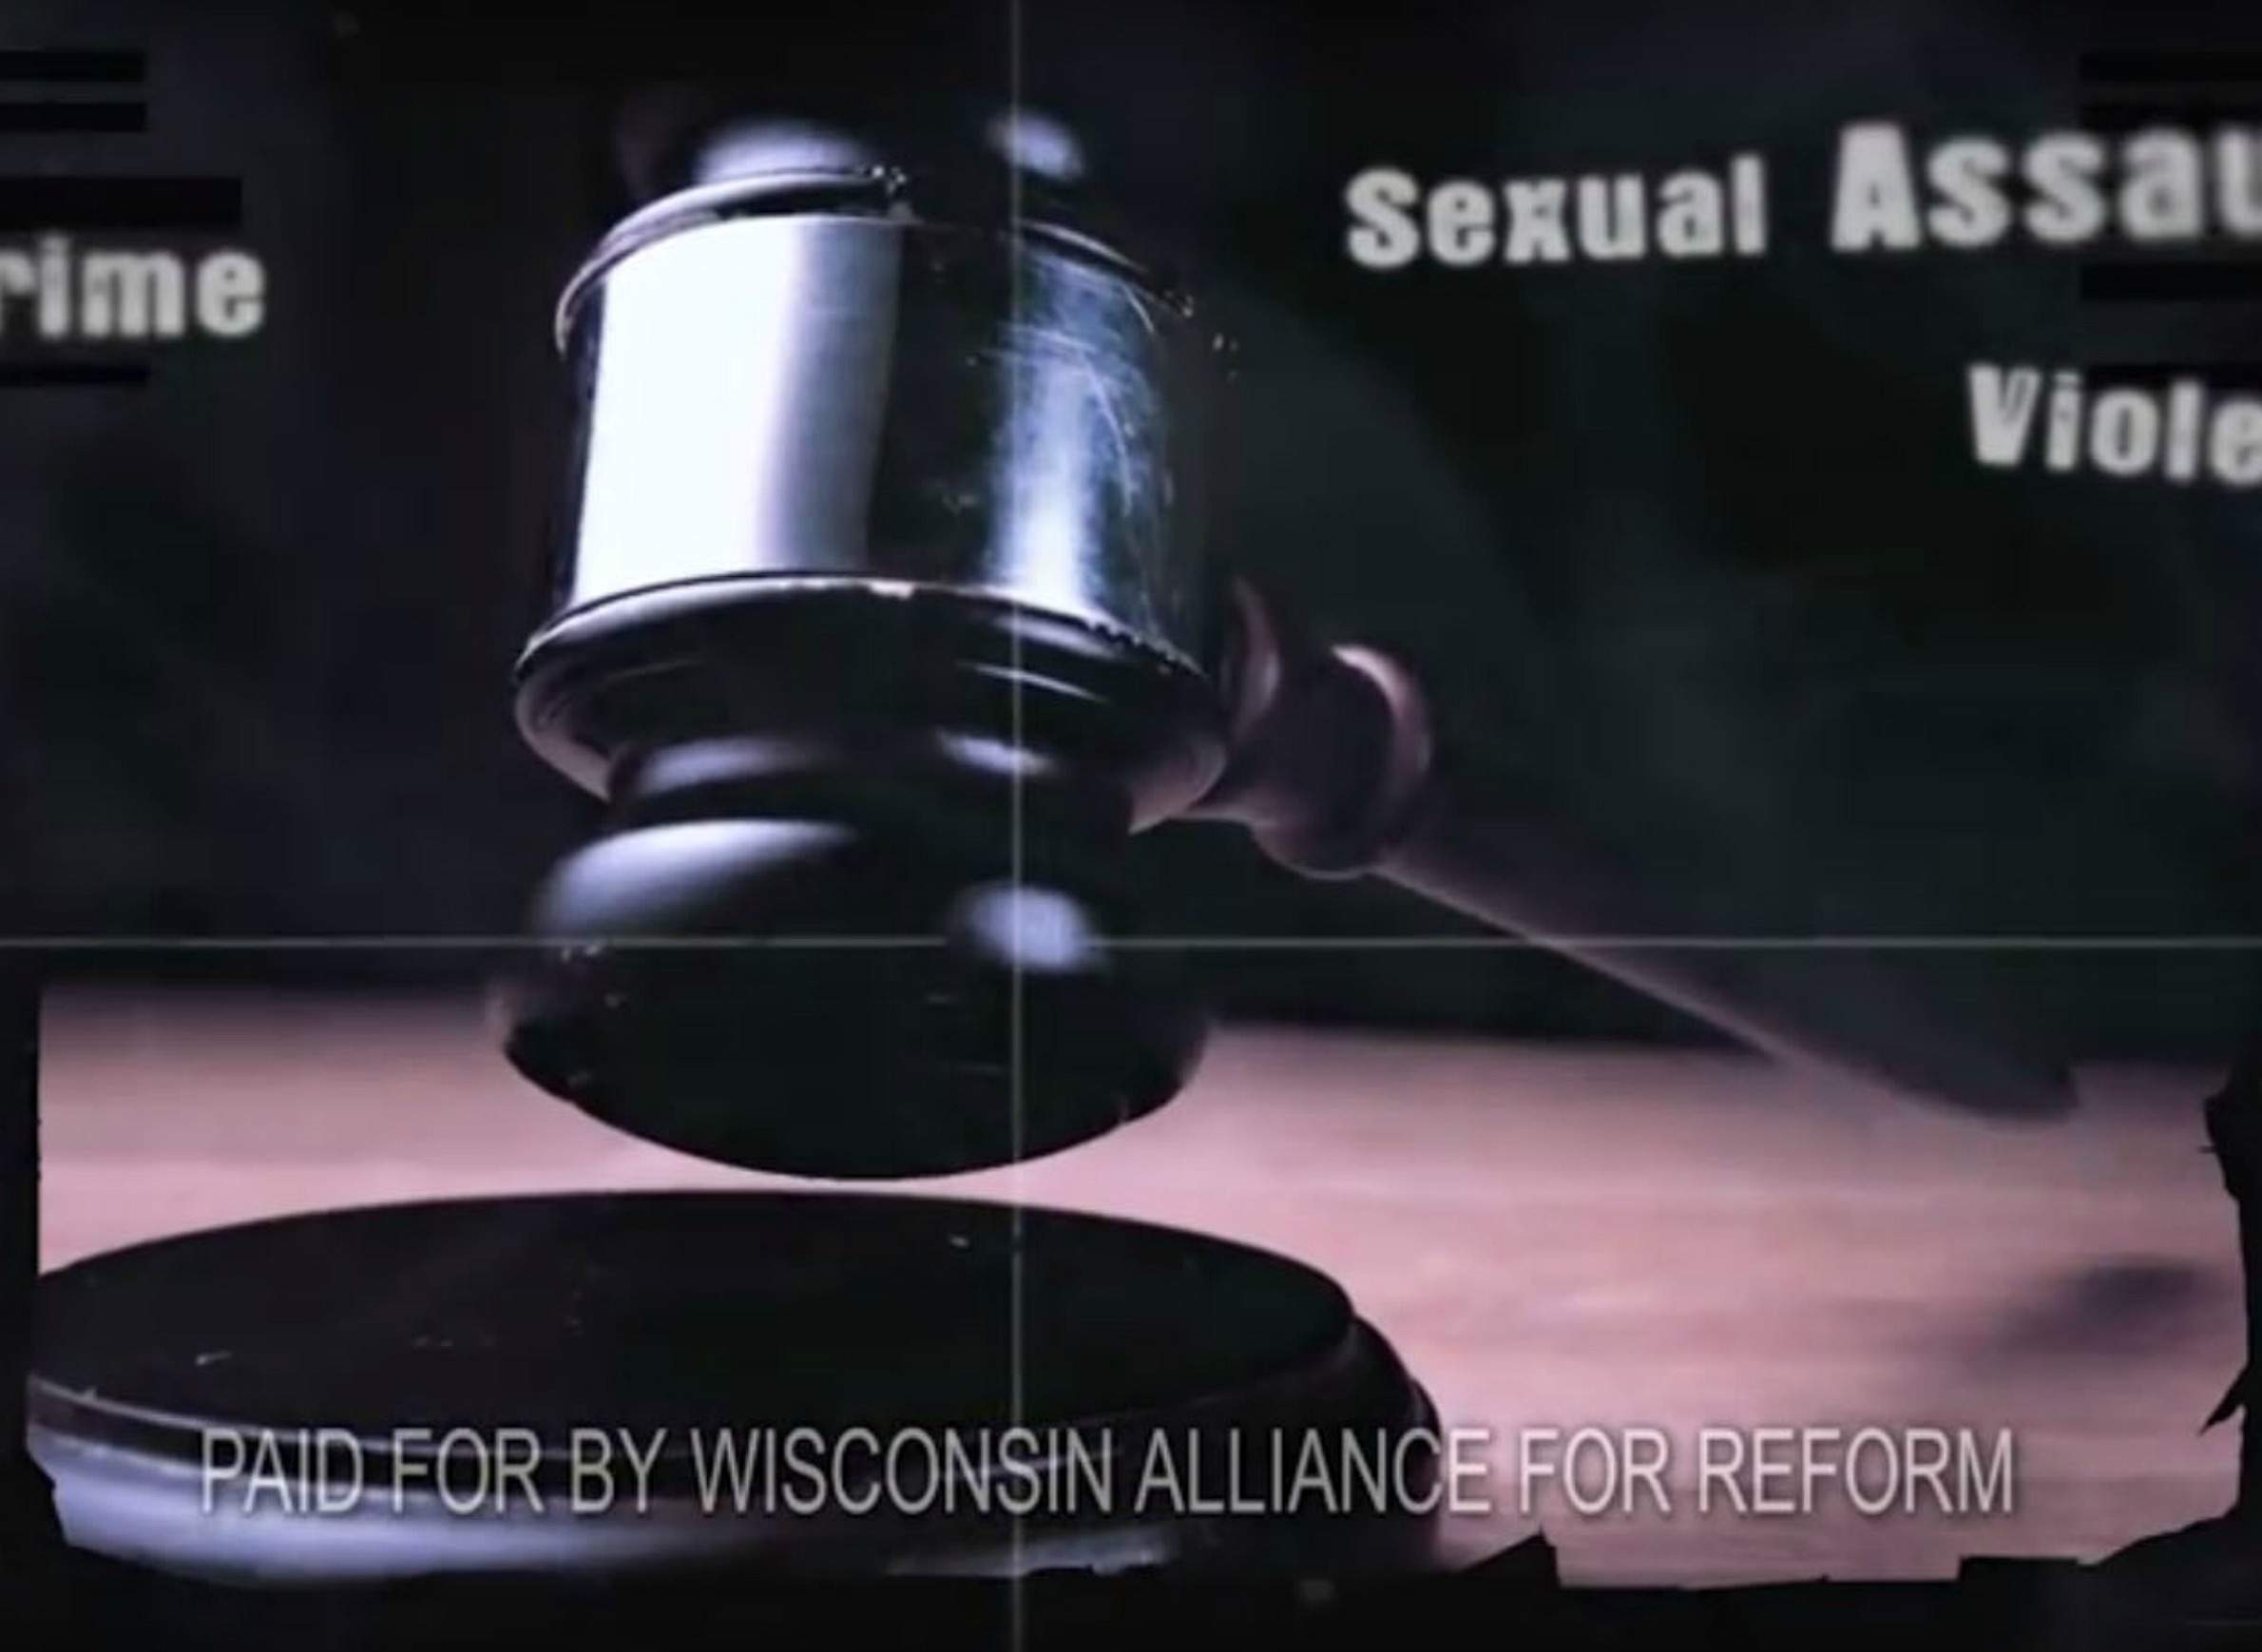 Wisconsin Alliance for Reform TV ad